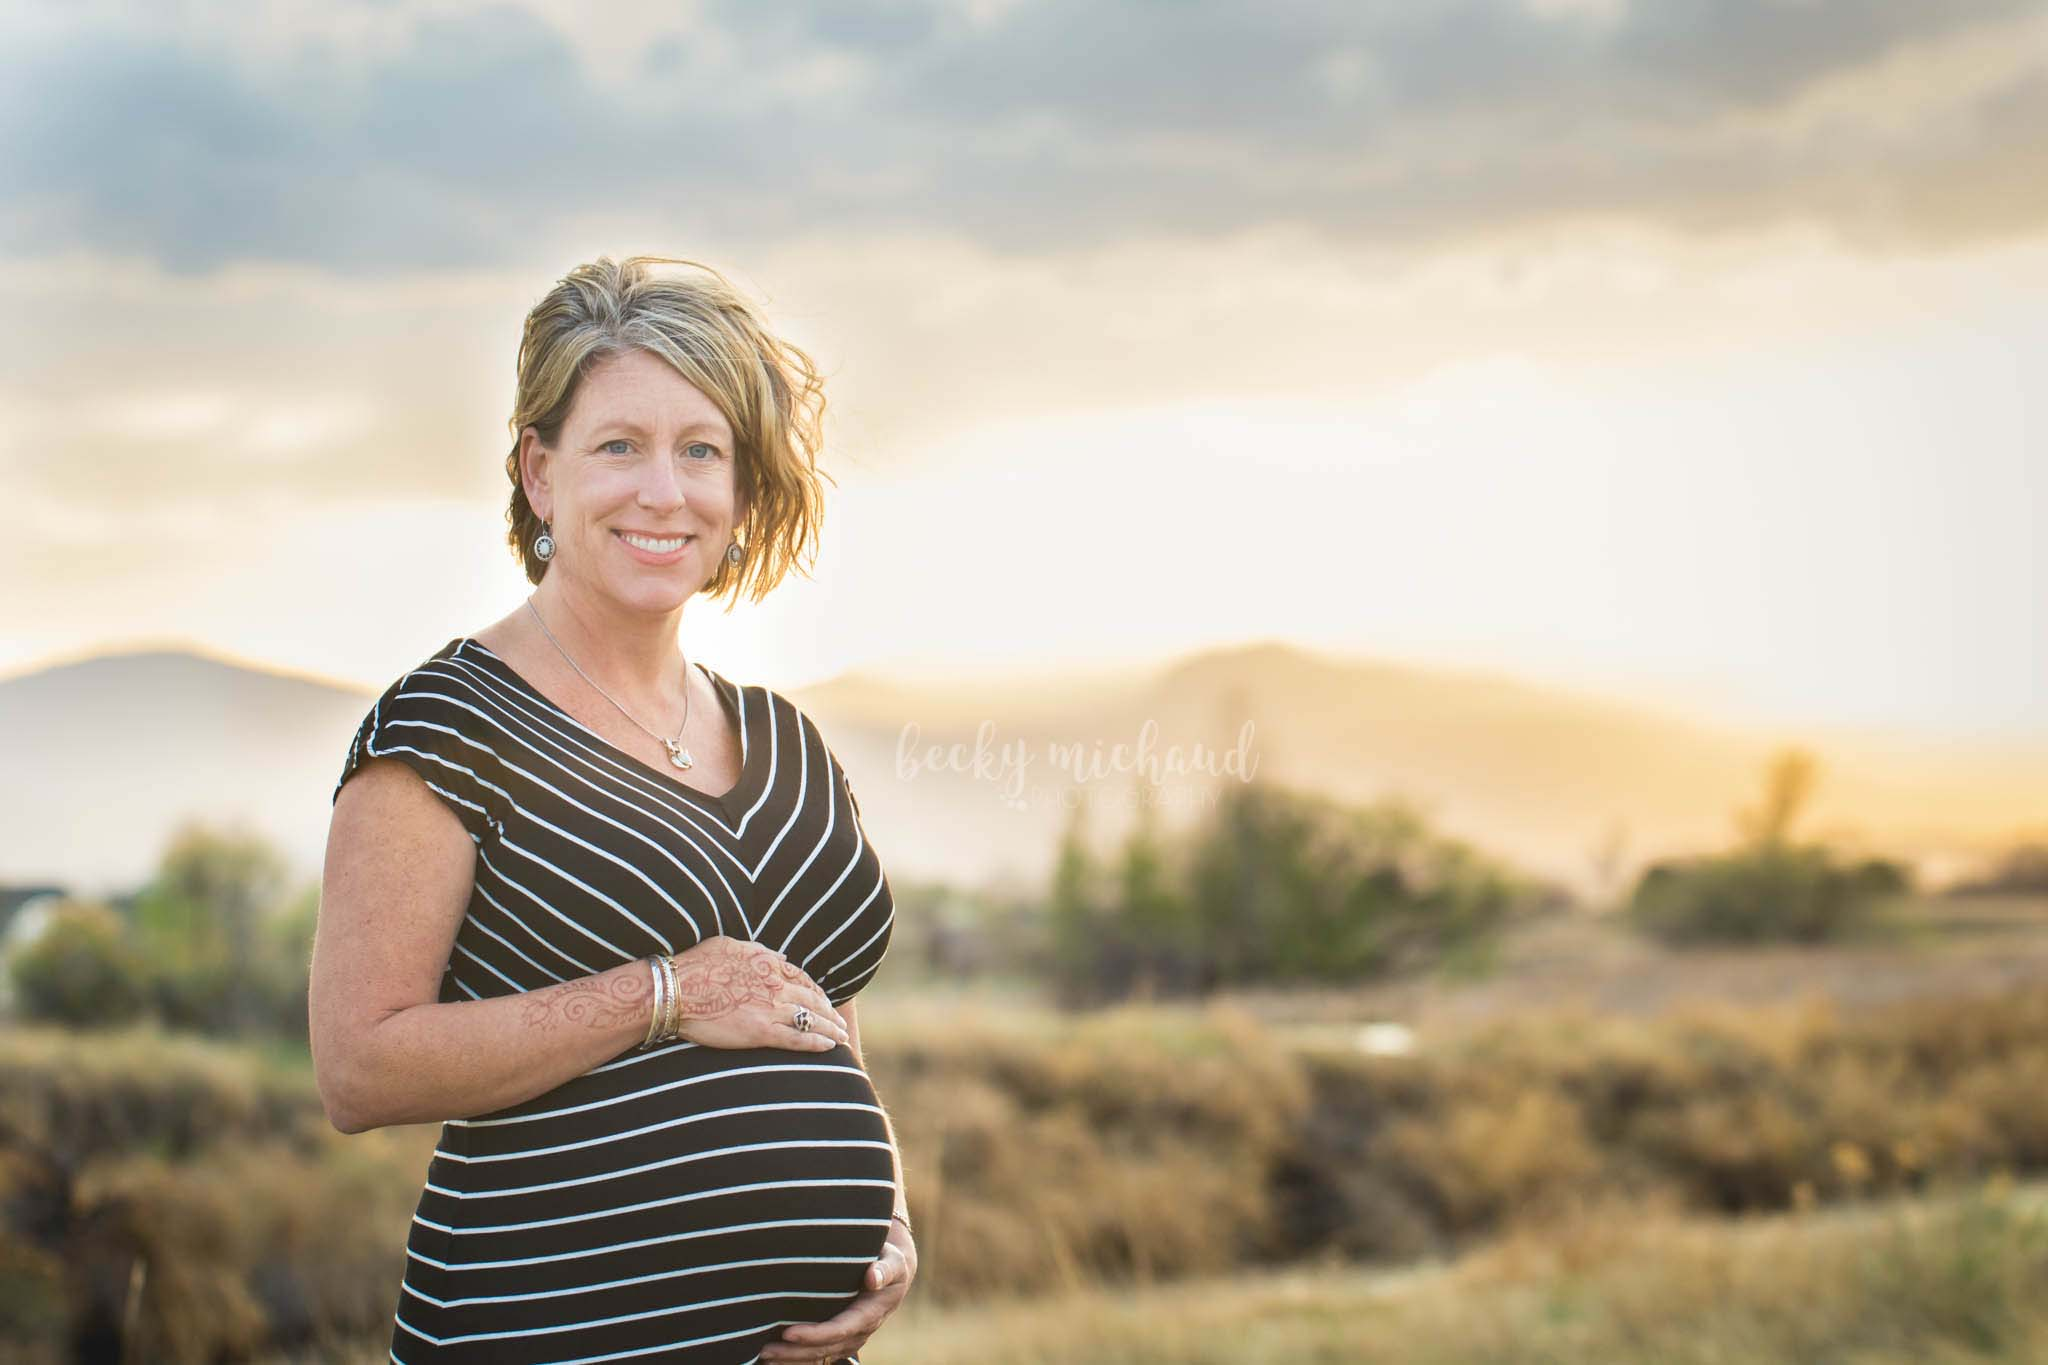 Maternity photo session with a mountain view at sunset in northern Colorado